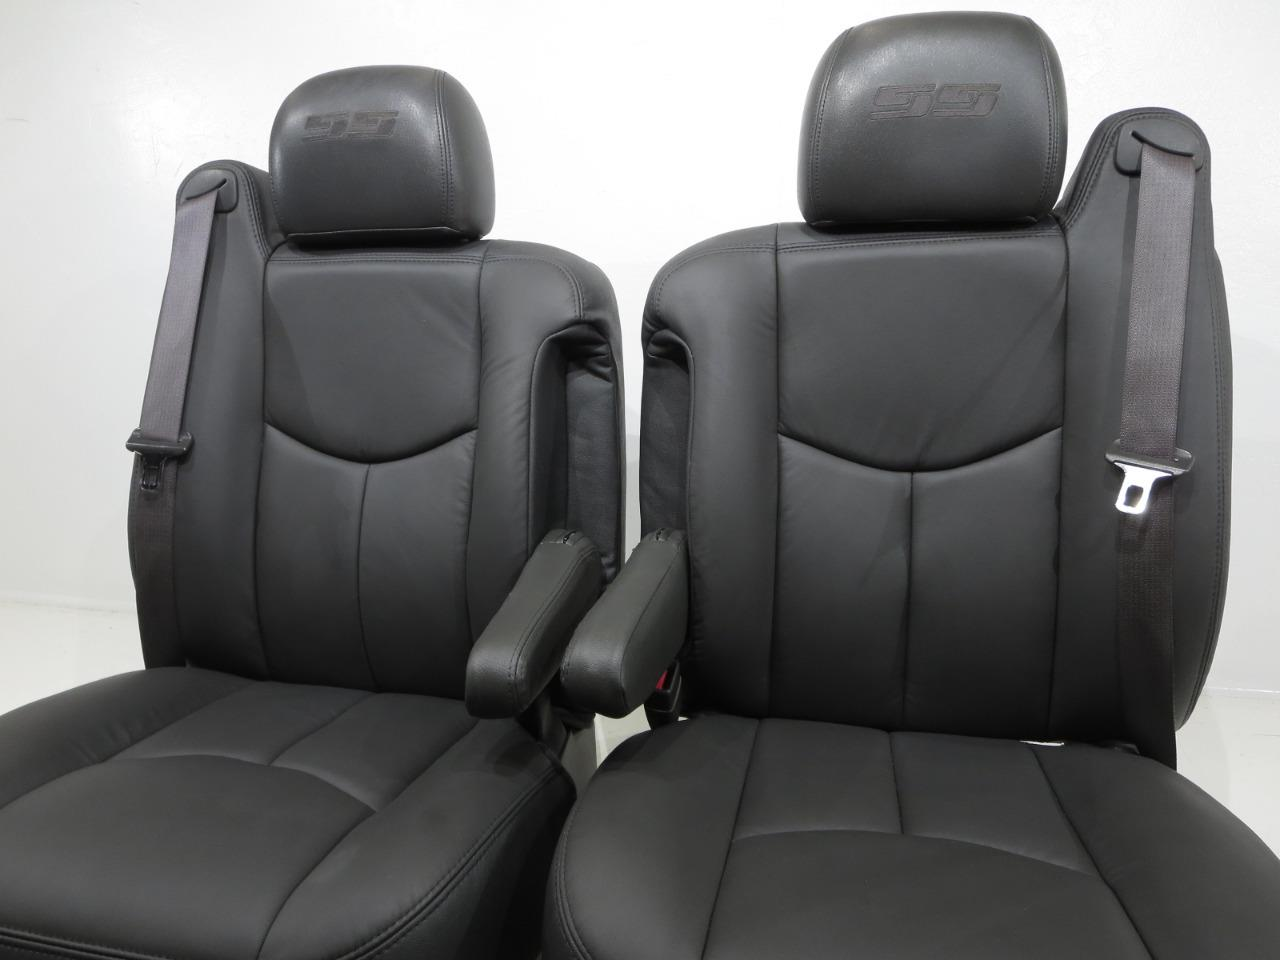 2004 chevy silverado oem seat covers velcromag. Black Bedroom Furniture Sets. Home Design Ideas